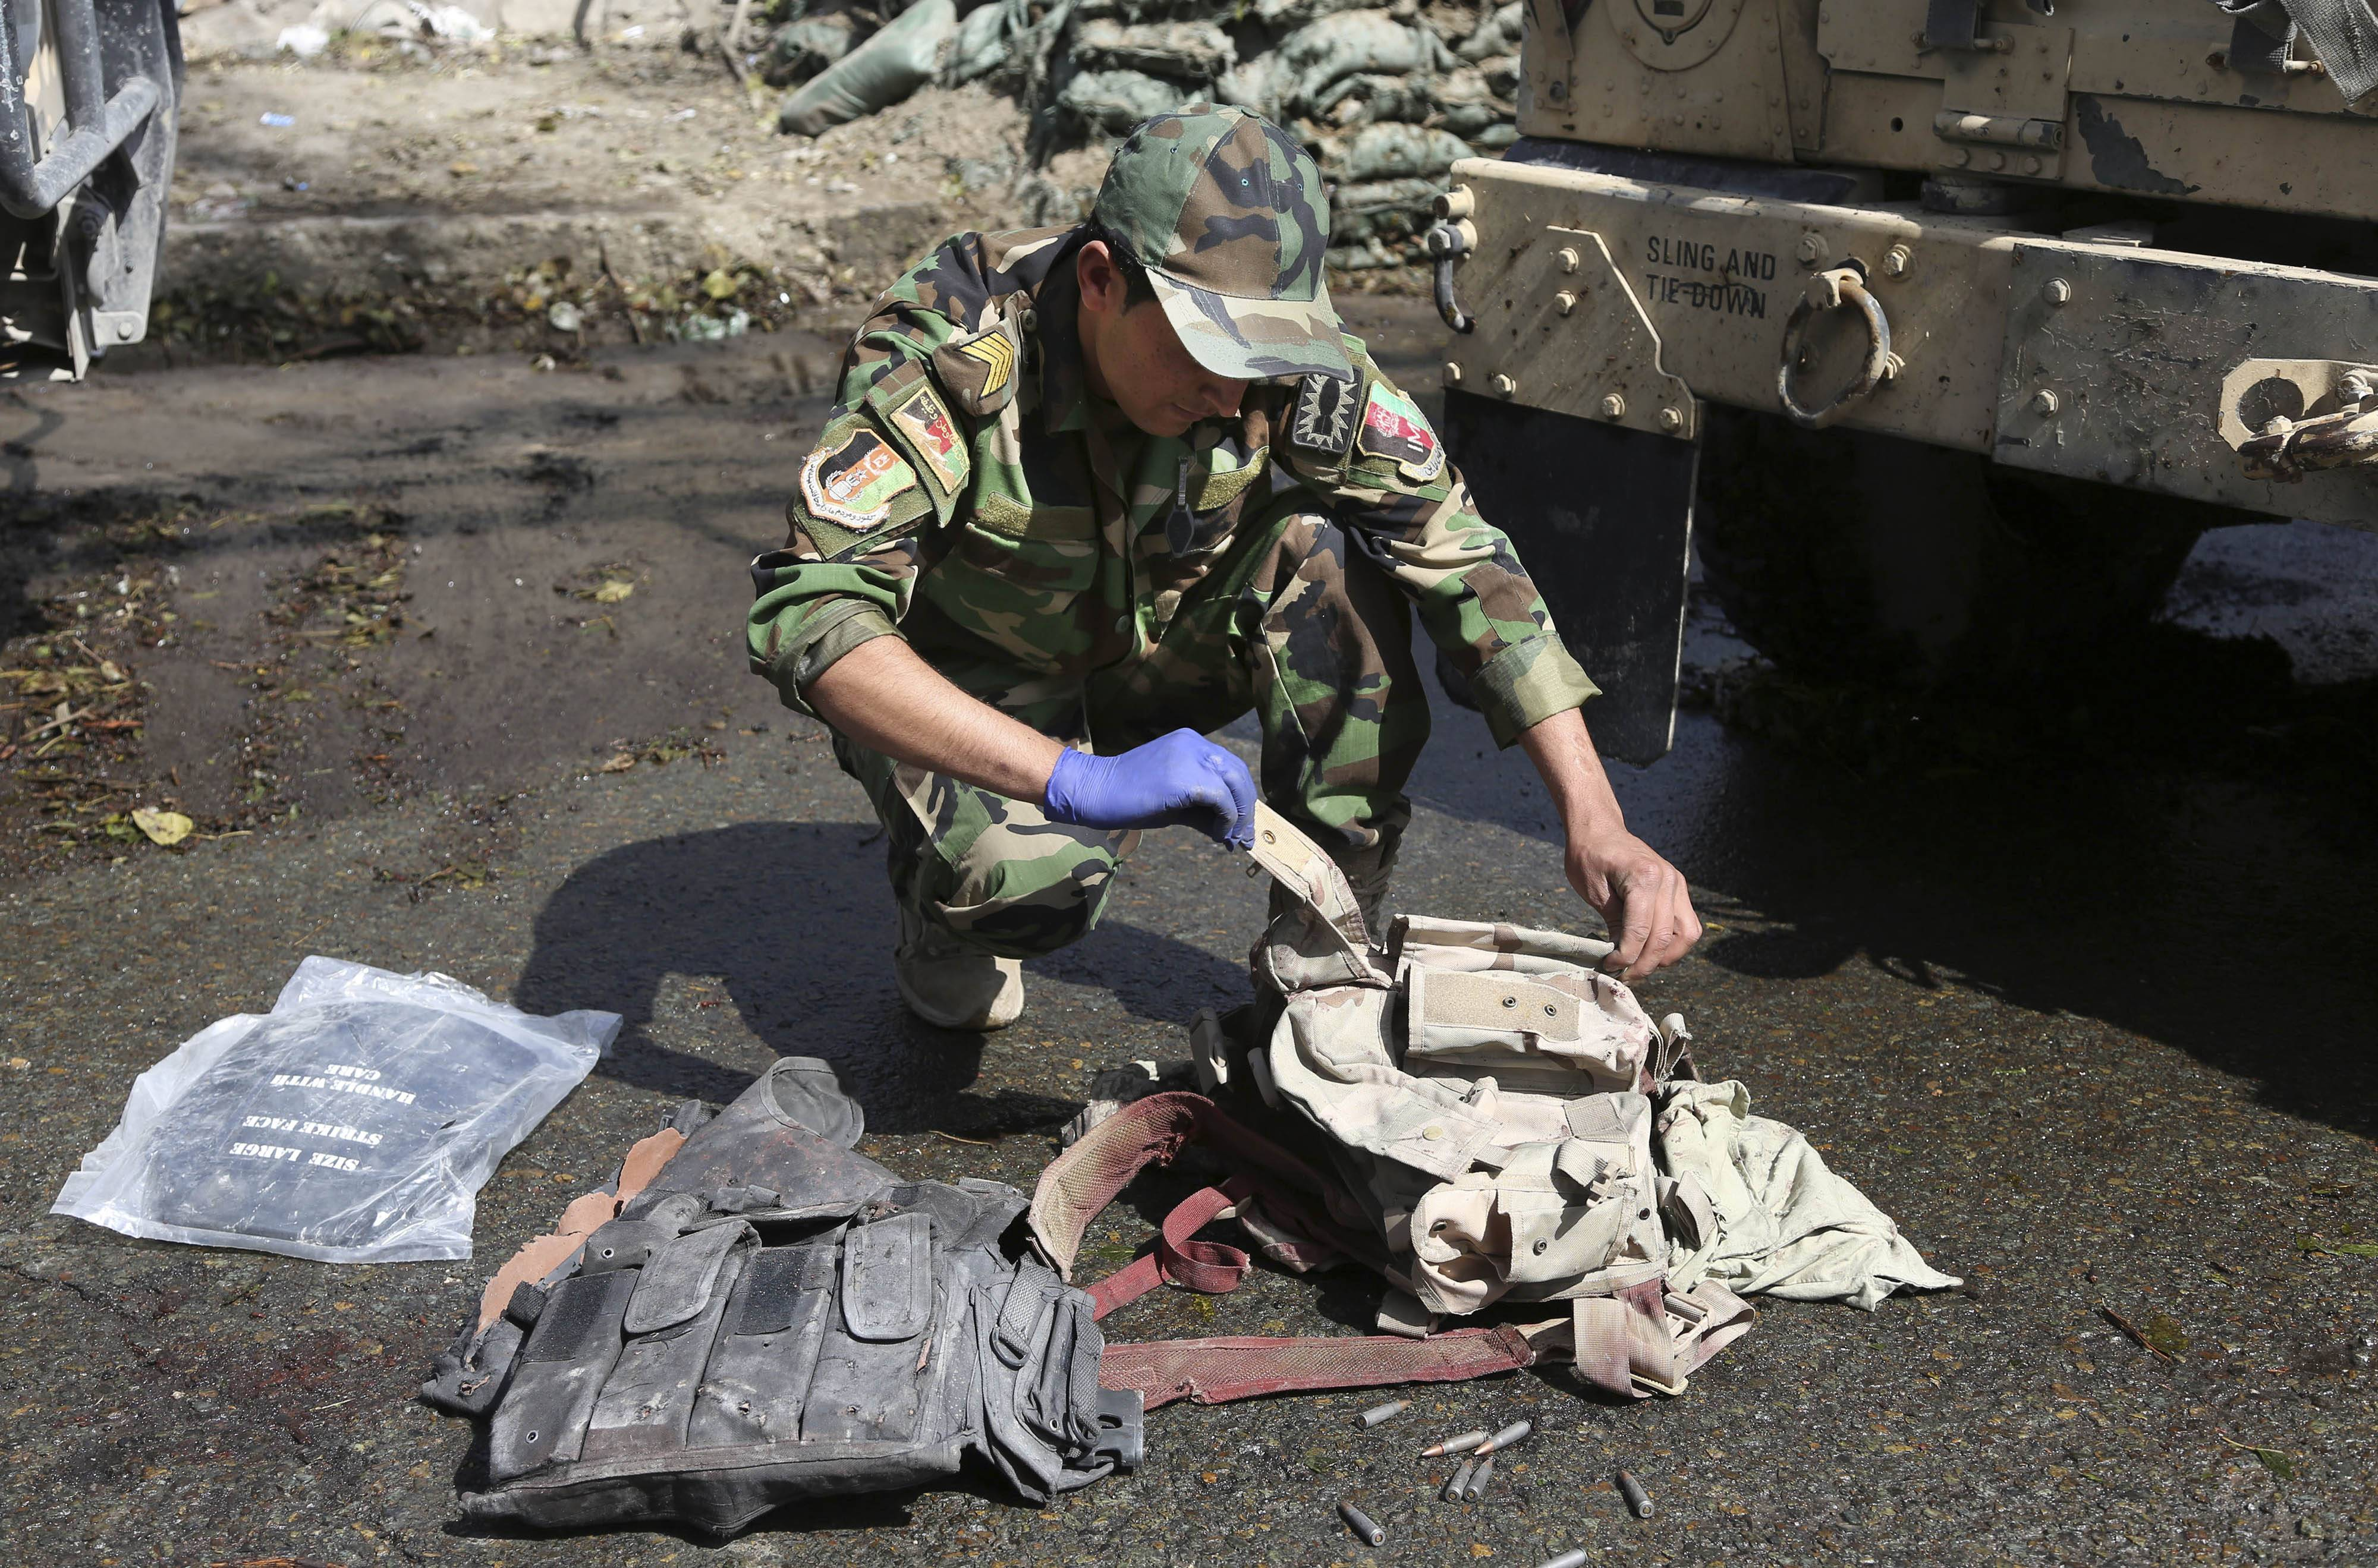 An Afghan Army soldier inspects bullet proof vests found after Taliban insurgents staged a multipronged attack on a police station in Jalalabad, eastern Afghanistan, Thursday, March 20, 2014. Taliban insurgents staged the attack, using a suicide bomber and gunmen to lay siege to the station, government officials said. Two remotely detonated bombs also exploded nearby.